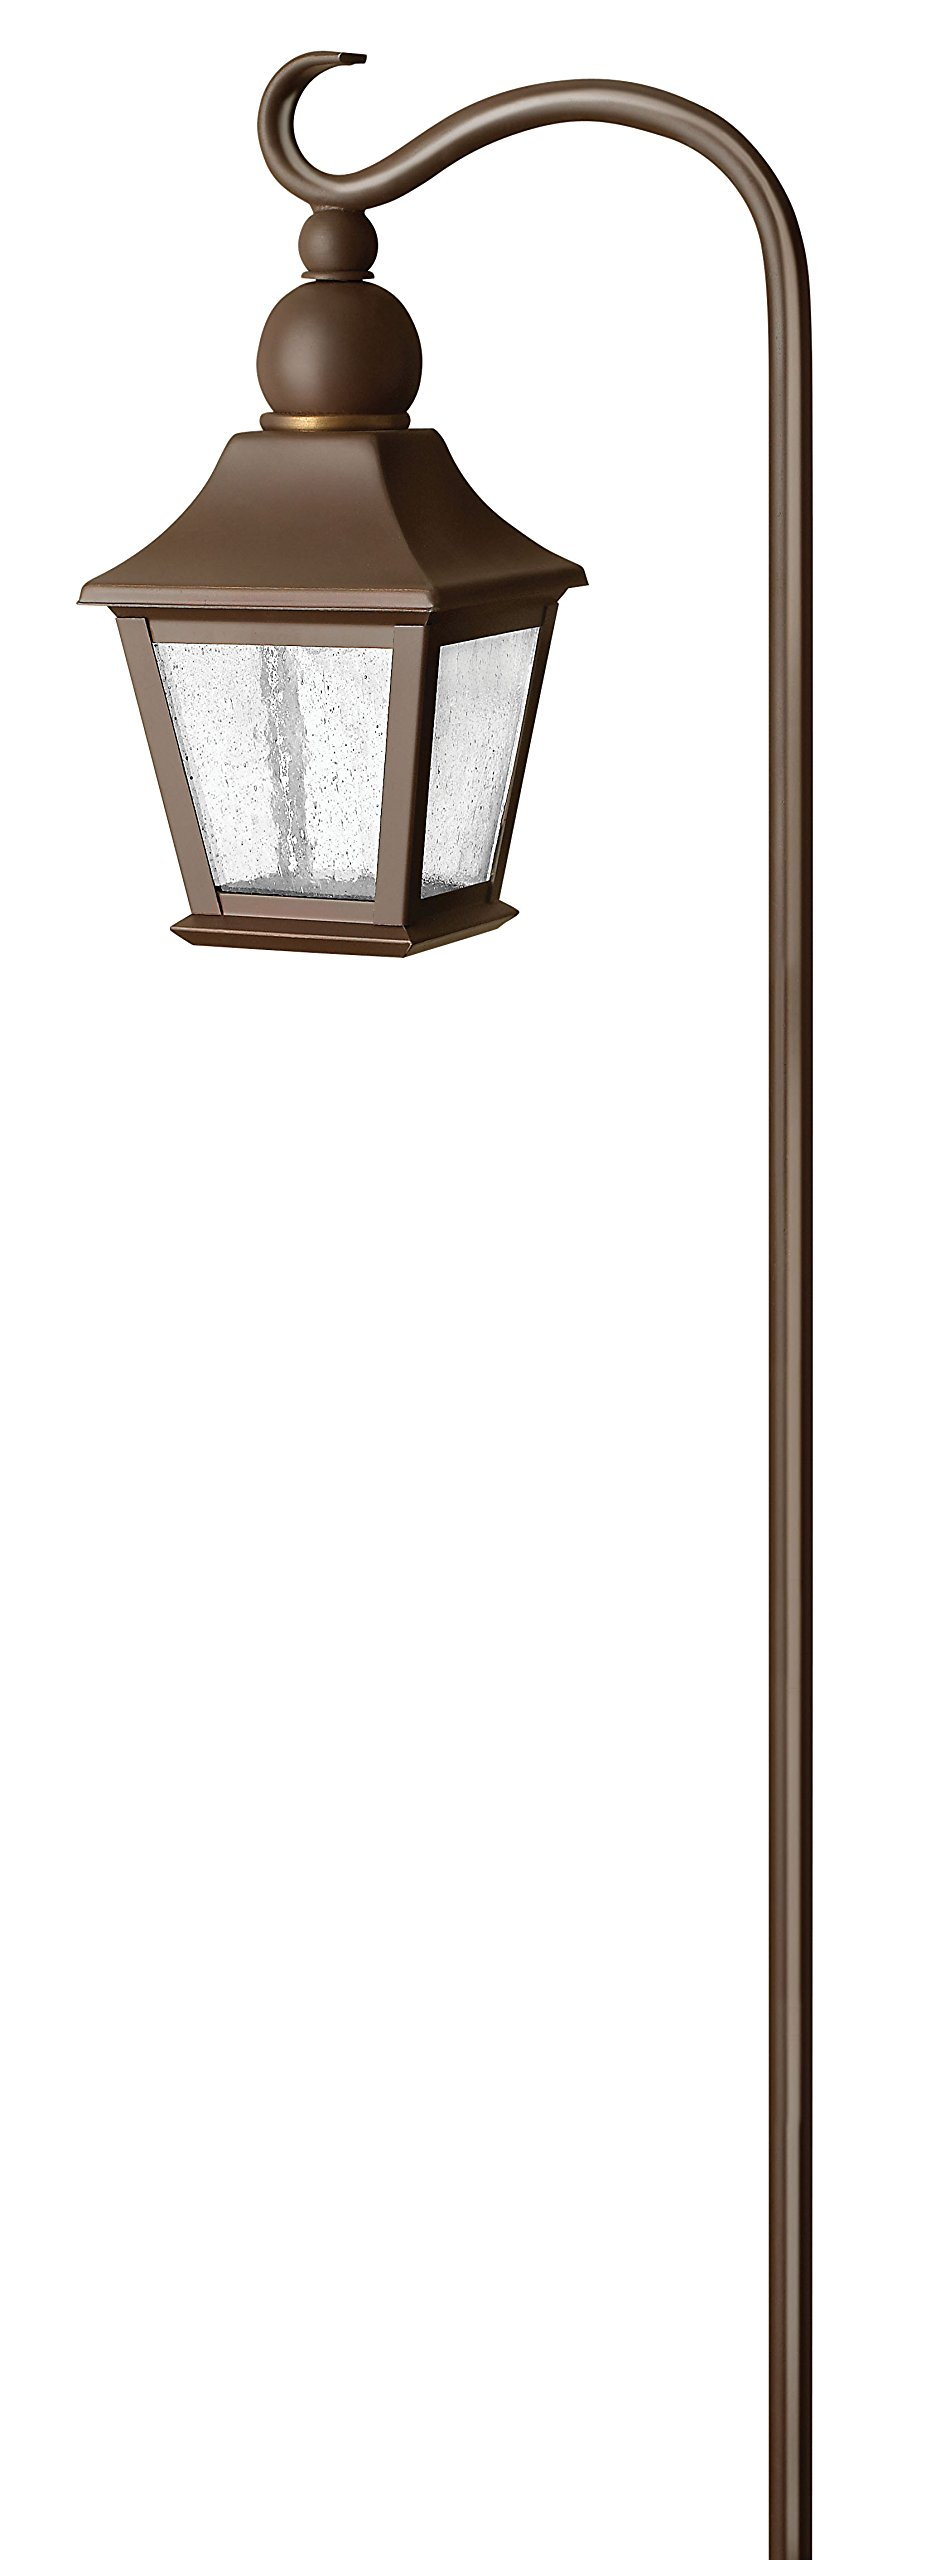 Hinkley Lighting 1555CB Bratenahl Path Light, 18 Watt T5 Wedge Base Light Bulb, Copper Bronze